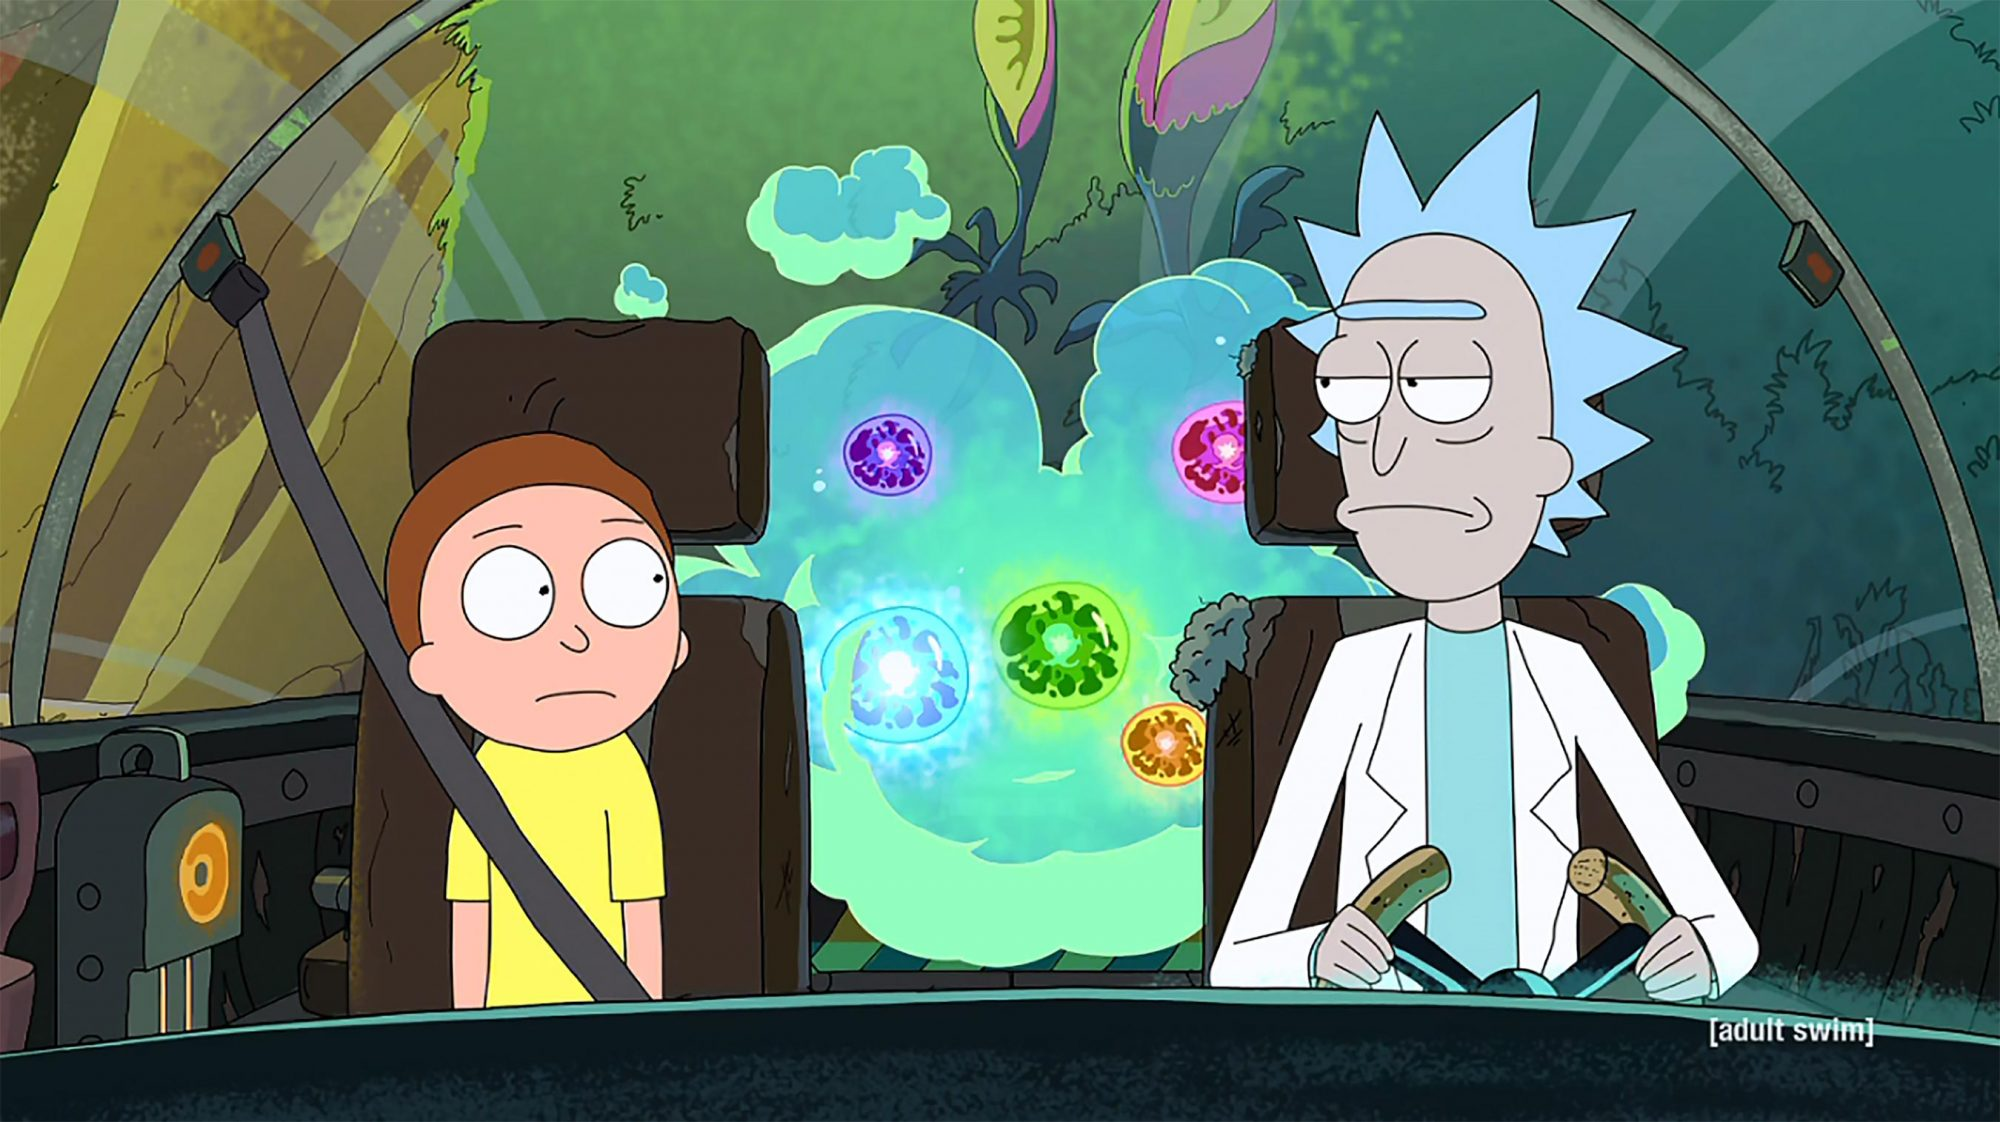 Ricky and Morty - Fart (Season 2, Episode 2)